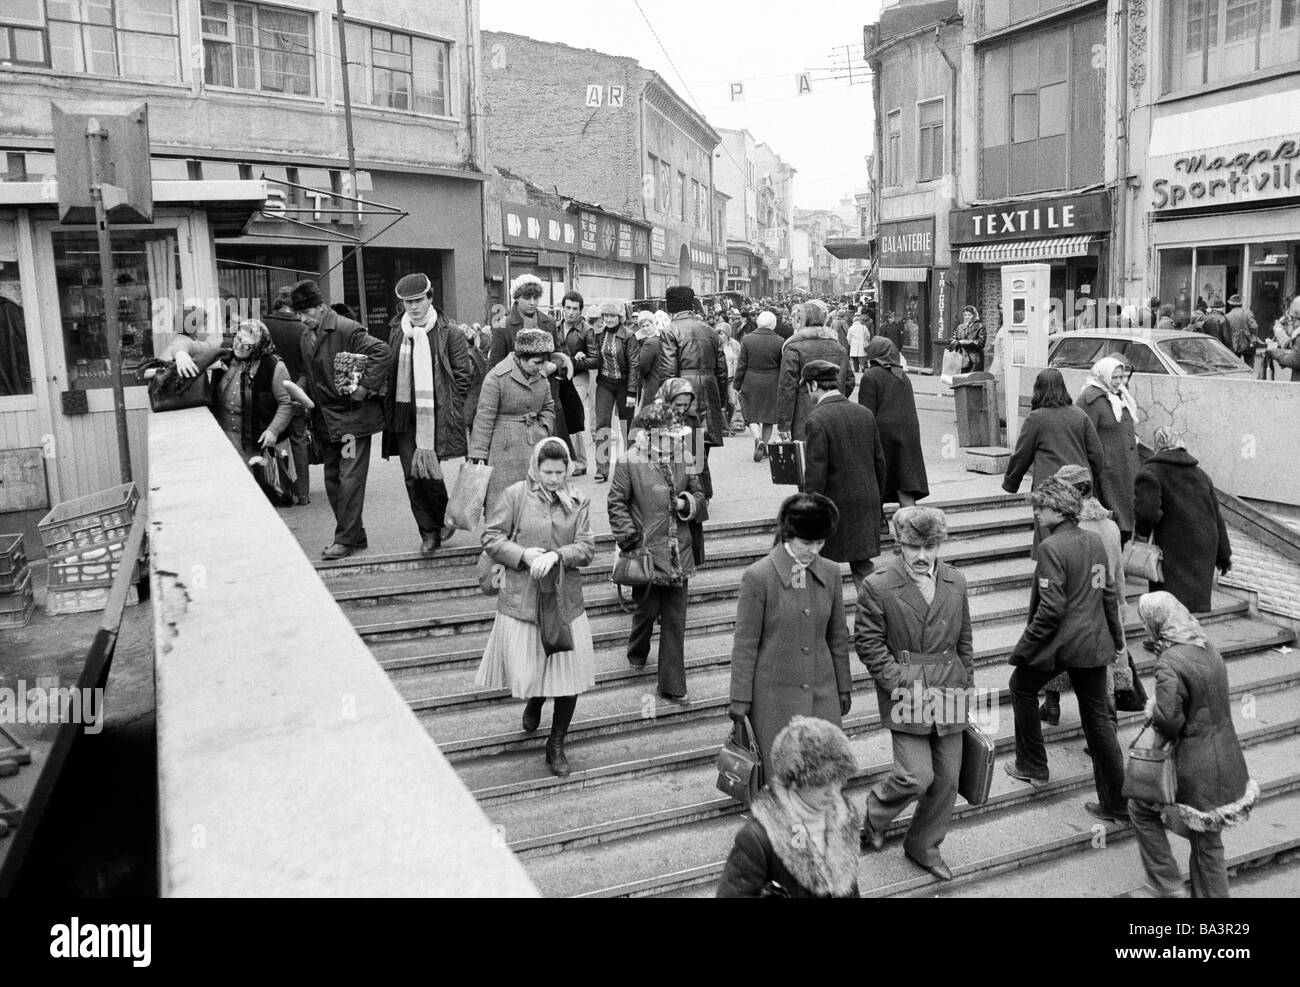 Eighties, black and white photo, people in winter clothes on shopping expedition, shopping street, pedestrian zone, - Stock Image